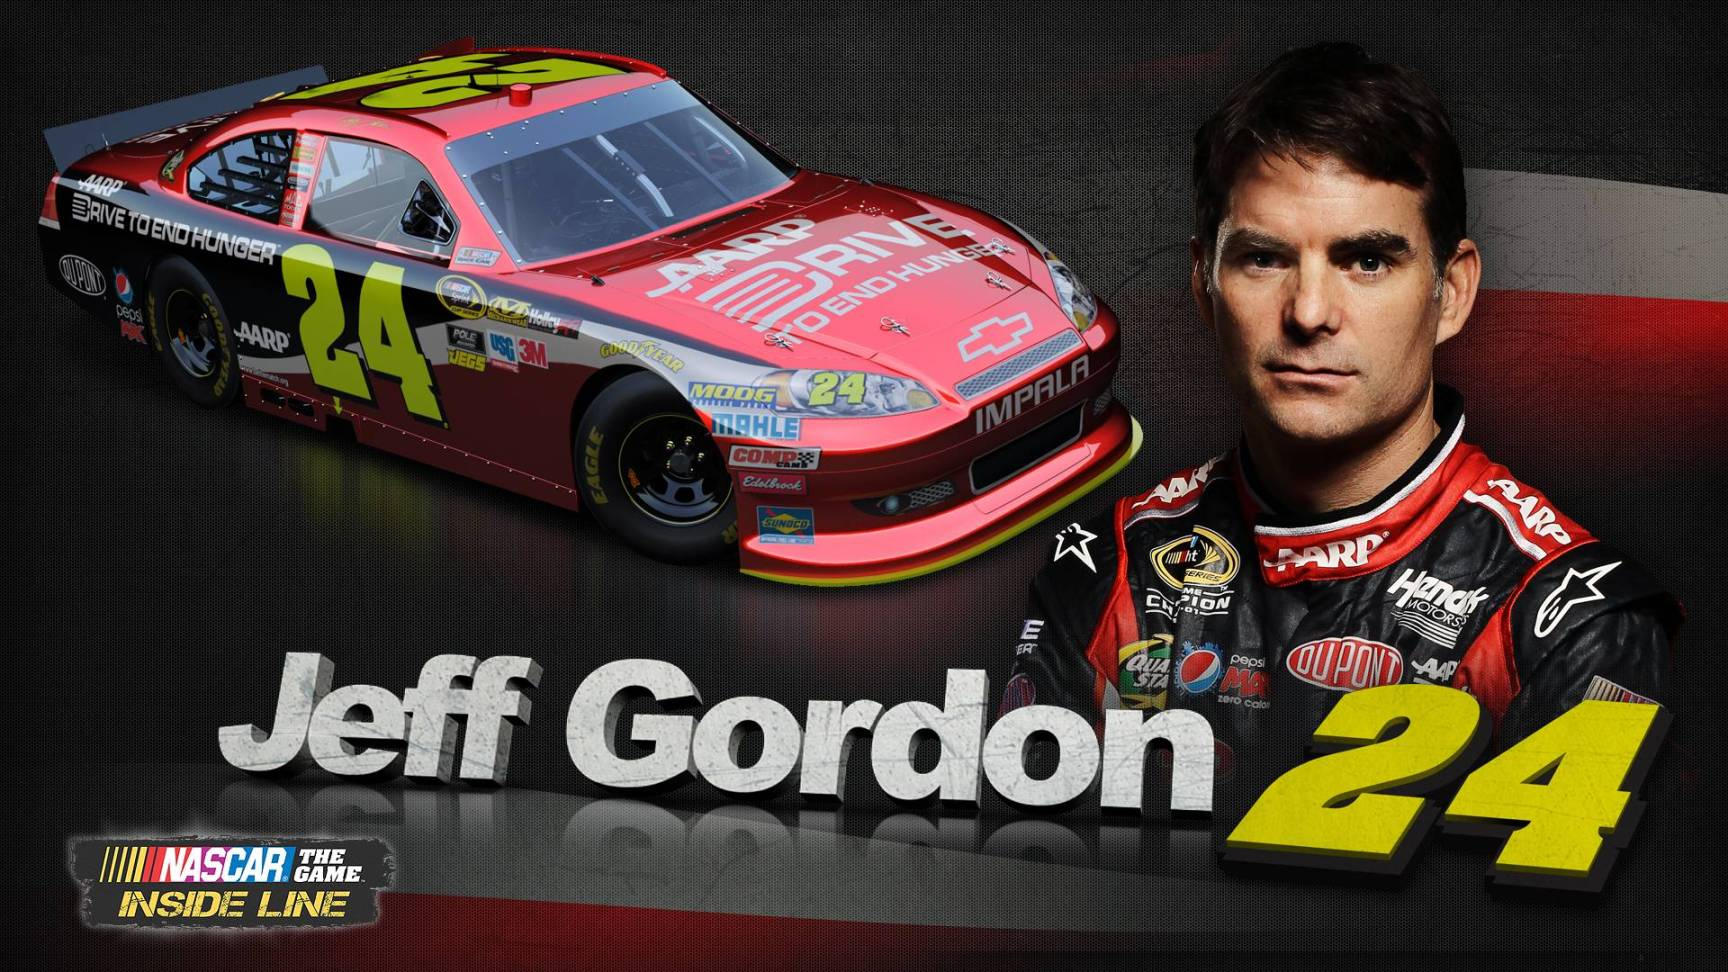 jeff gordon desktop wallpaper - photo #7